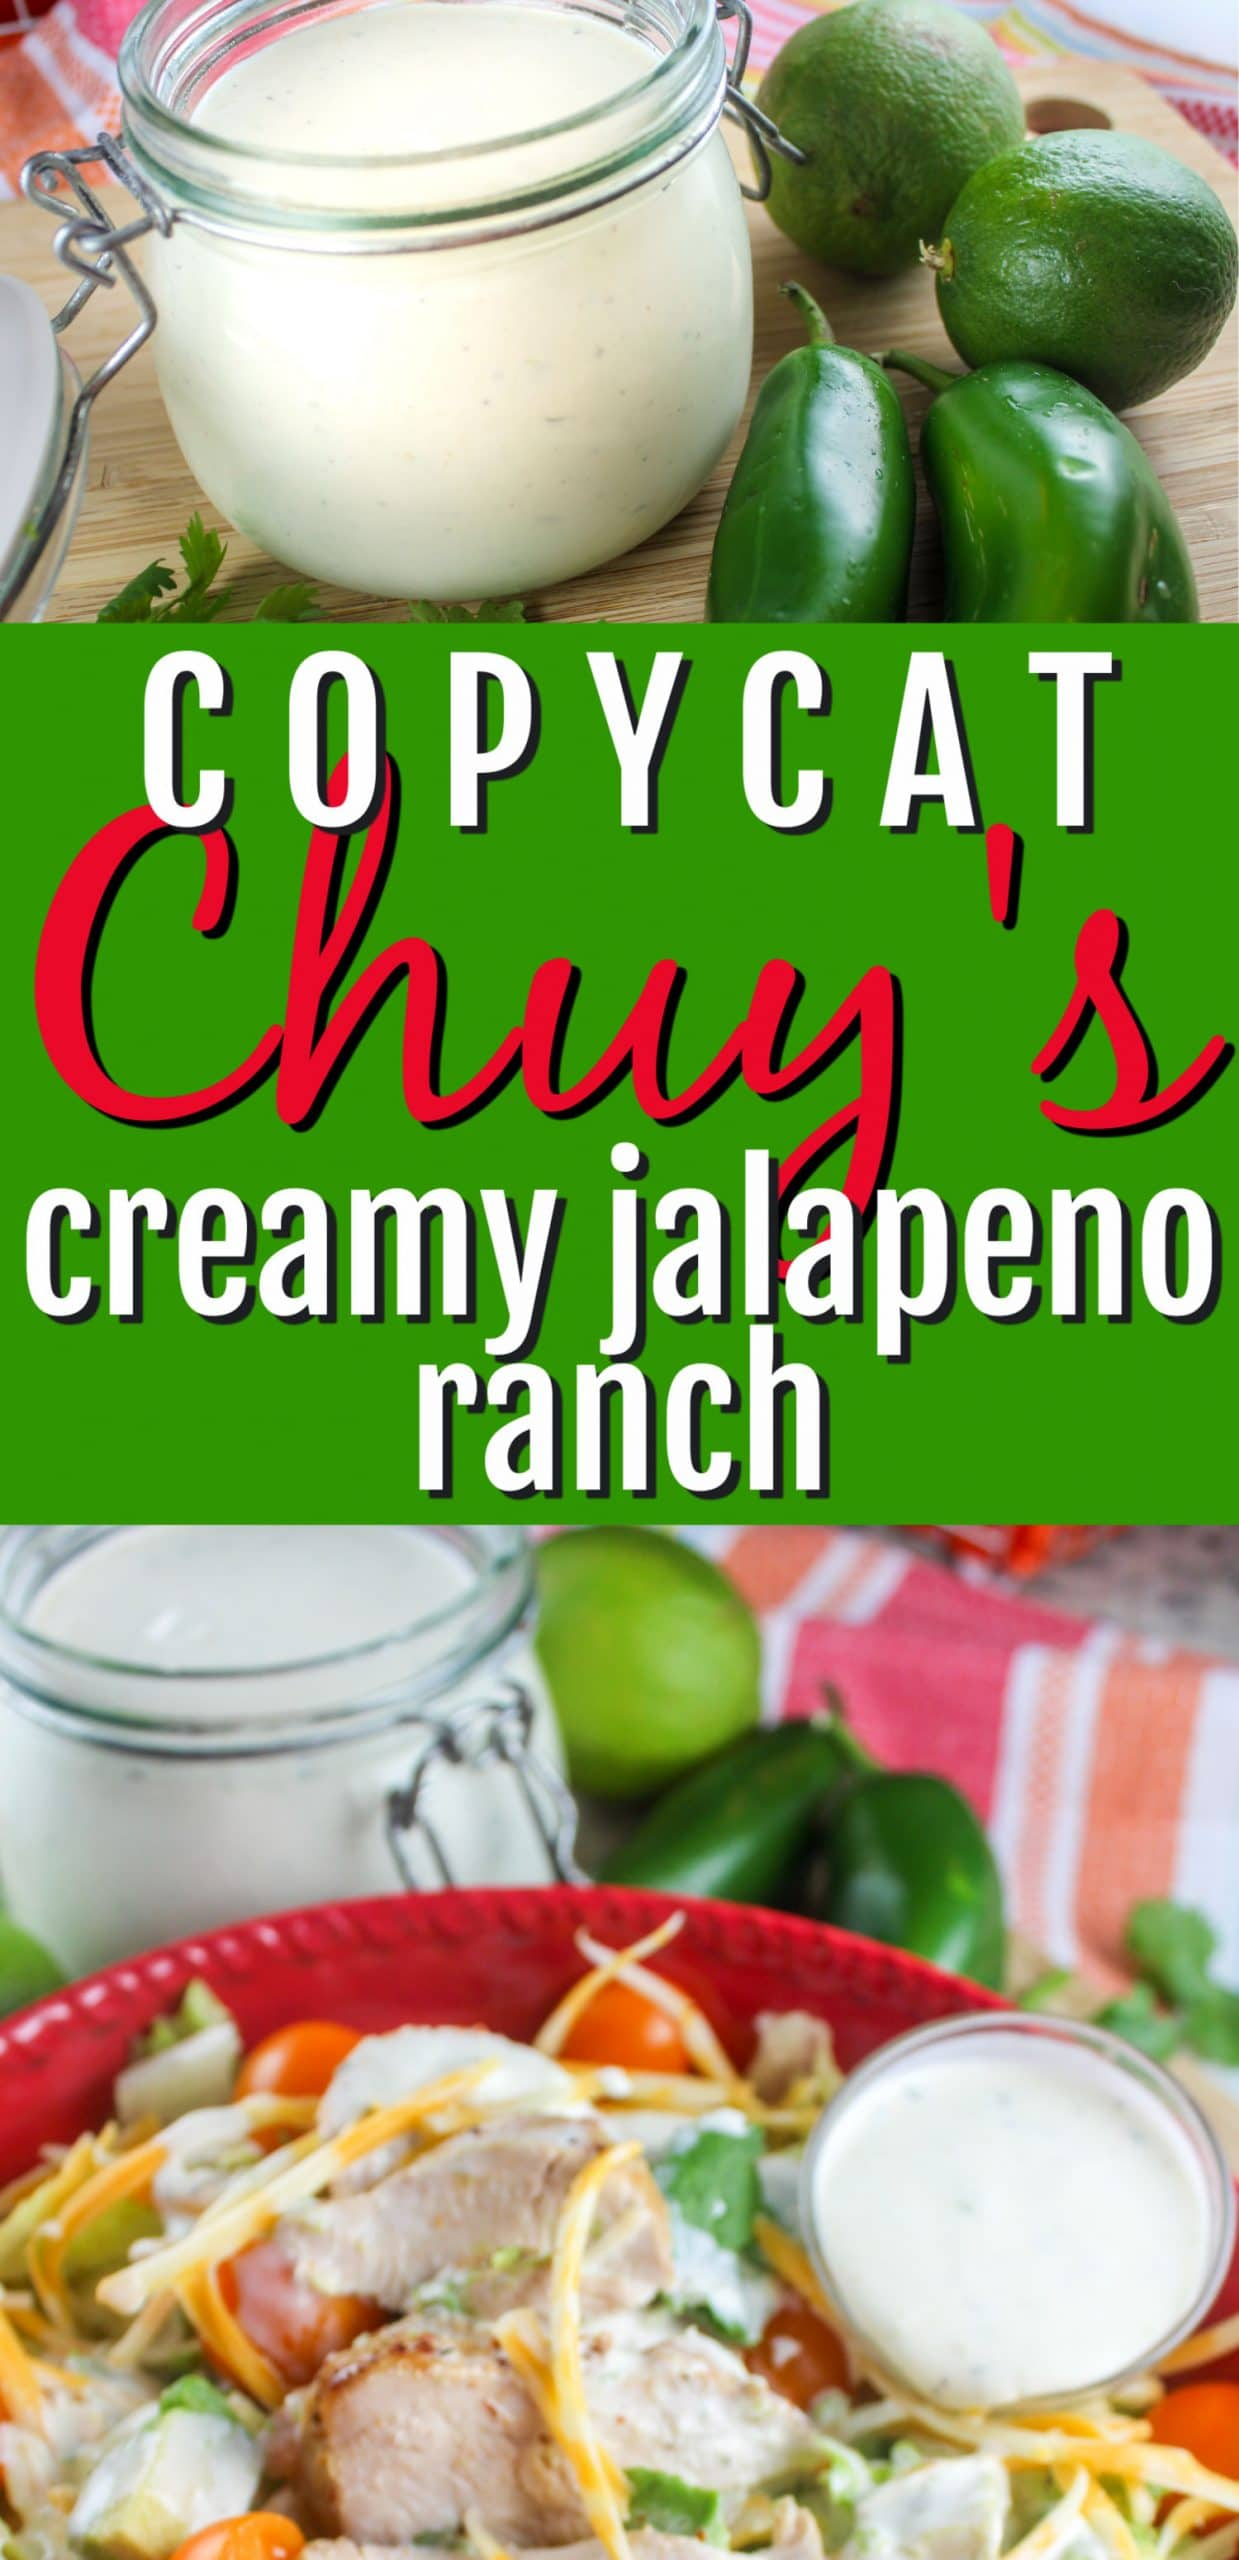 This Copycat Chuy's Creamy Jalapeno Ranch recipe is ready in 5 minutes and is so much better than anything out of a bottle! Chuy's is one of my favorite spots for dining out. I tried their Creamy Jalapeno Ranch and HAD to come home and make it for myself! via @foodhussy